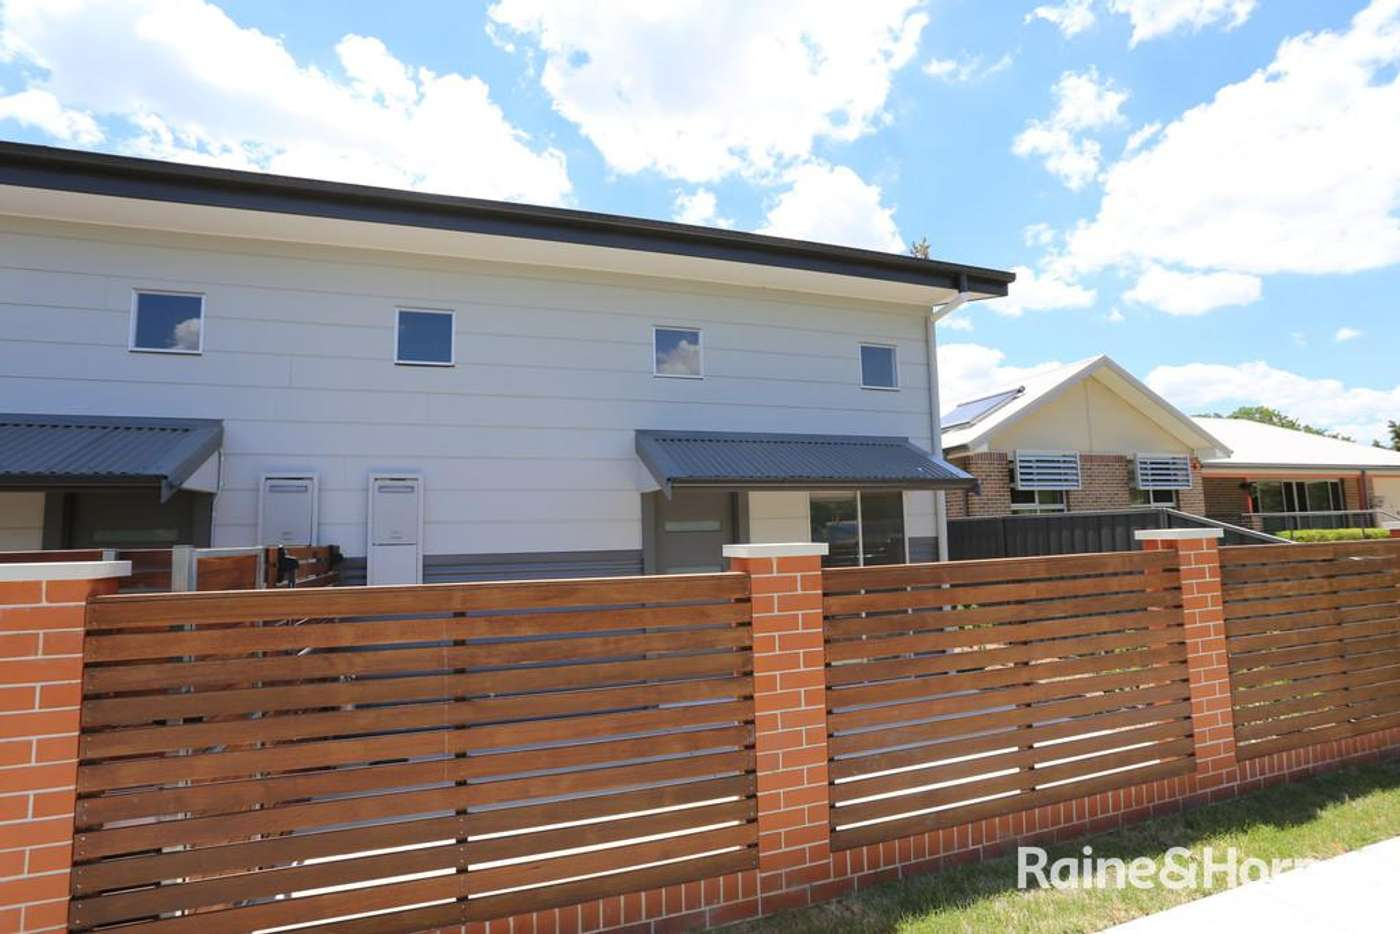 Main view of Homely unit listing, 3/94 Havannah Street, Bathurst NSW 2795